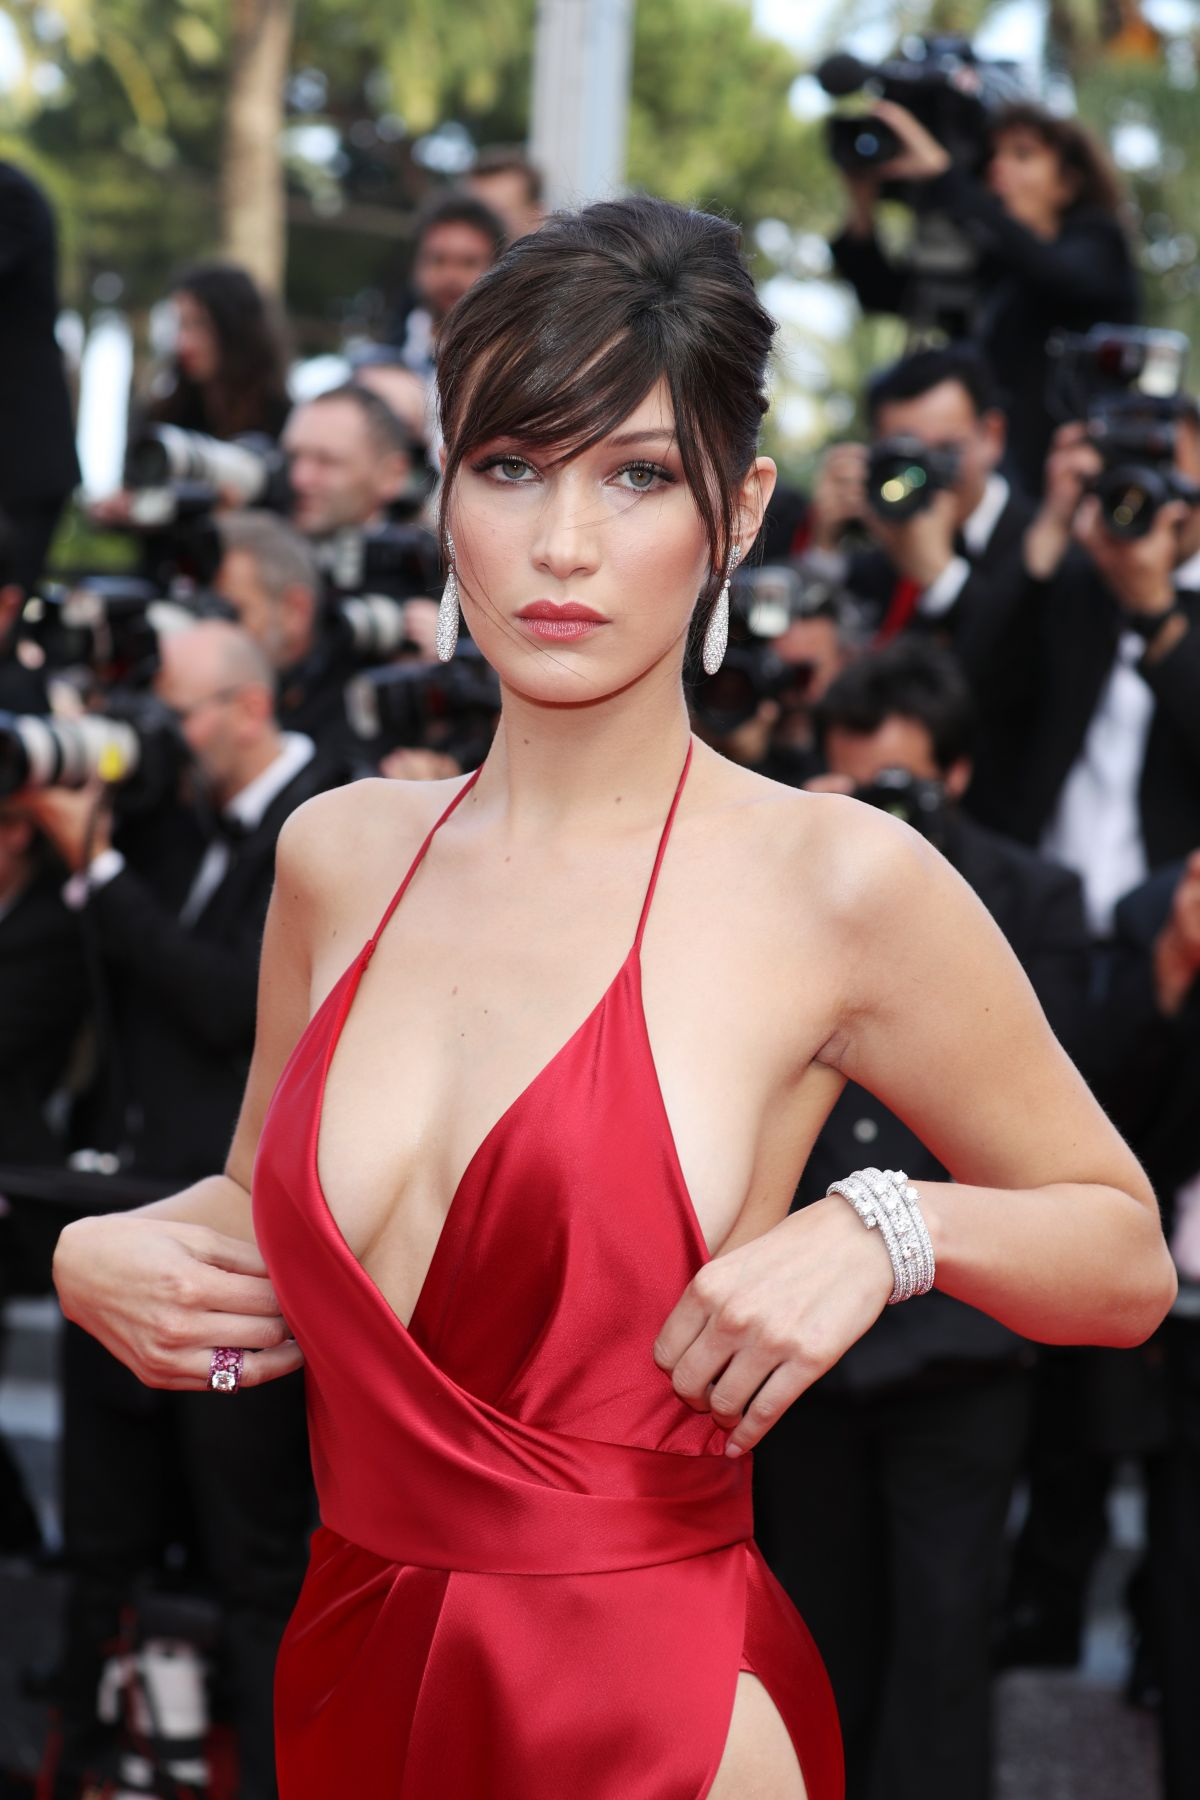 http-forum.ns4w.org-showthread.php-570203-bella-hadid-the-unknown-girl-premiere-at-69th-annual-cannes-film-festival-05-18-16-adds-s-08ce82a2f025b7305318944fd6bd9518_1